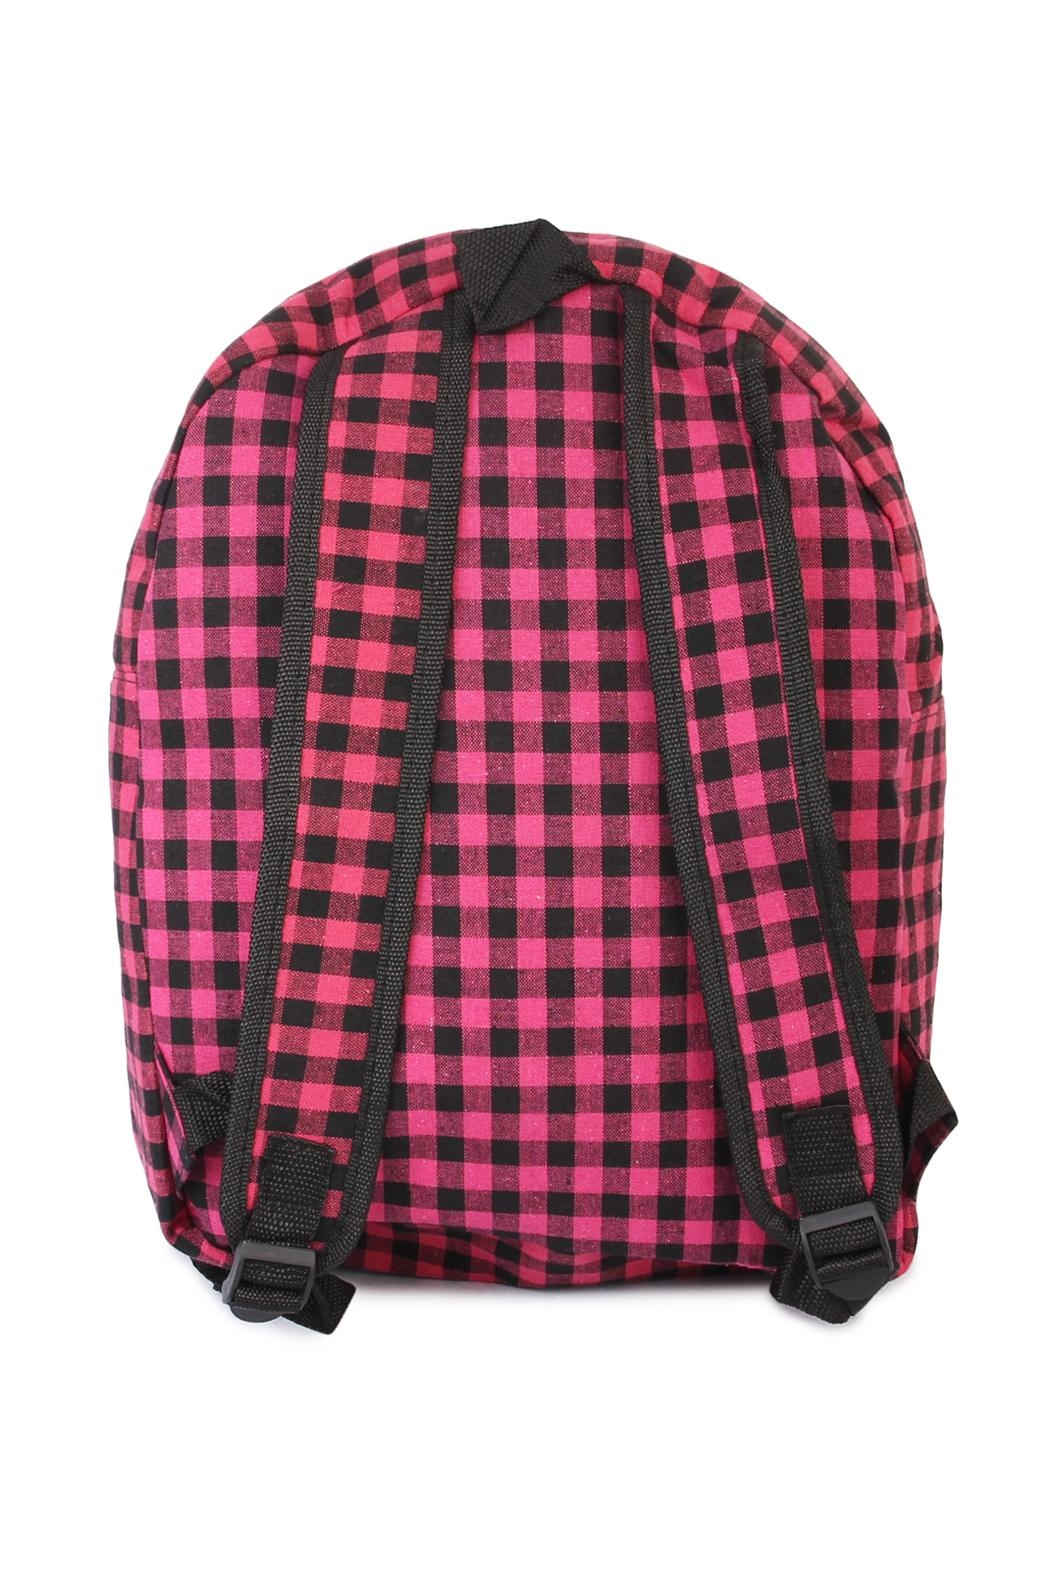 Riah Fashion Pink Checkered Backpack - Side Cropped Image